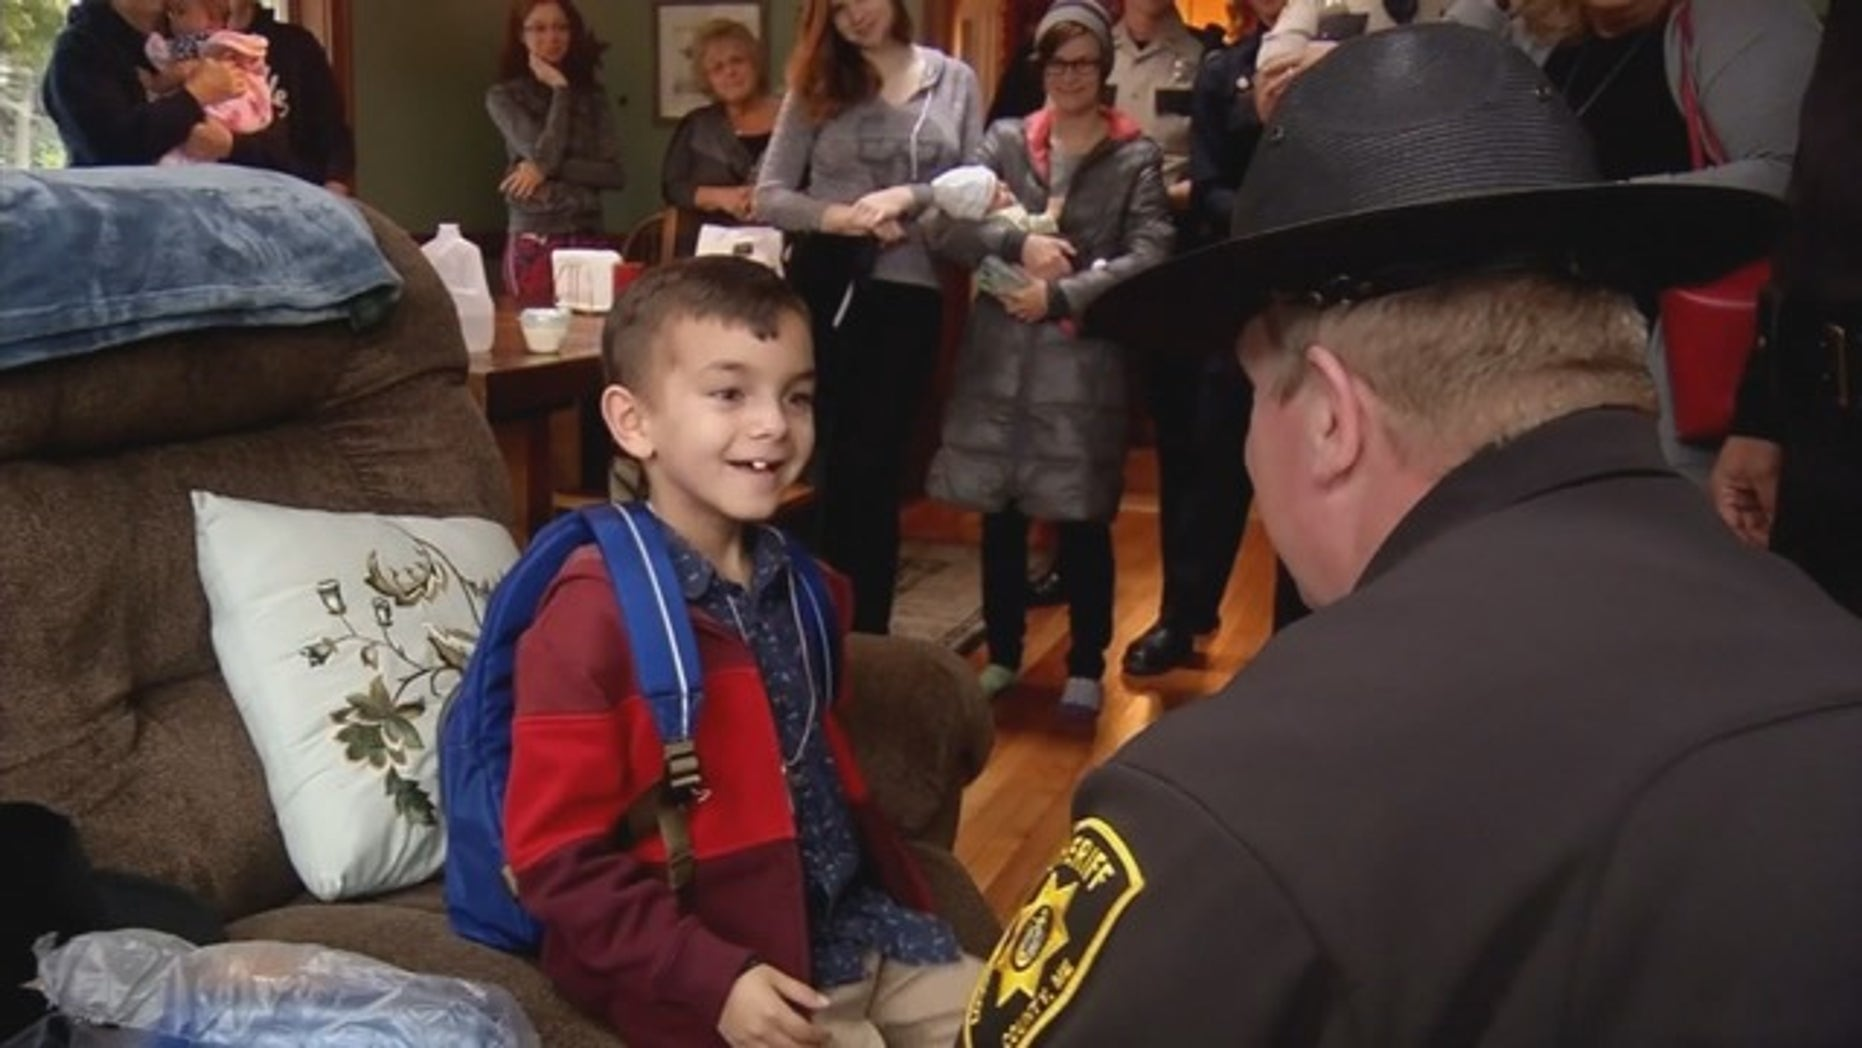 Liam, who was diagnosed with high-grade glioma last year, dreams of becoming a police officer one day.